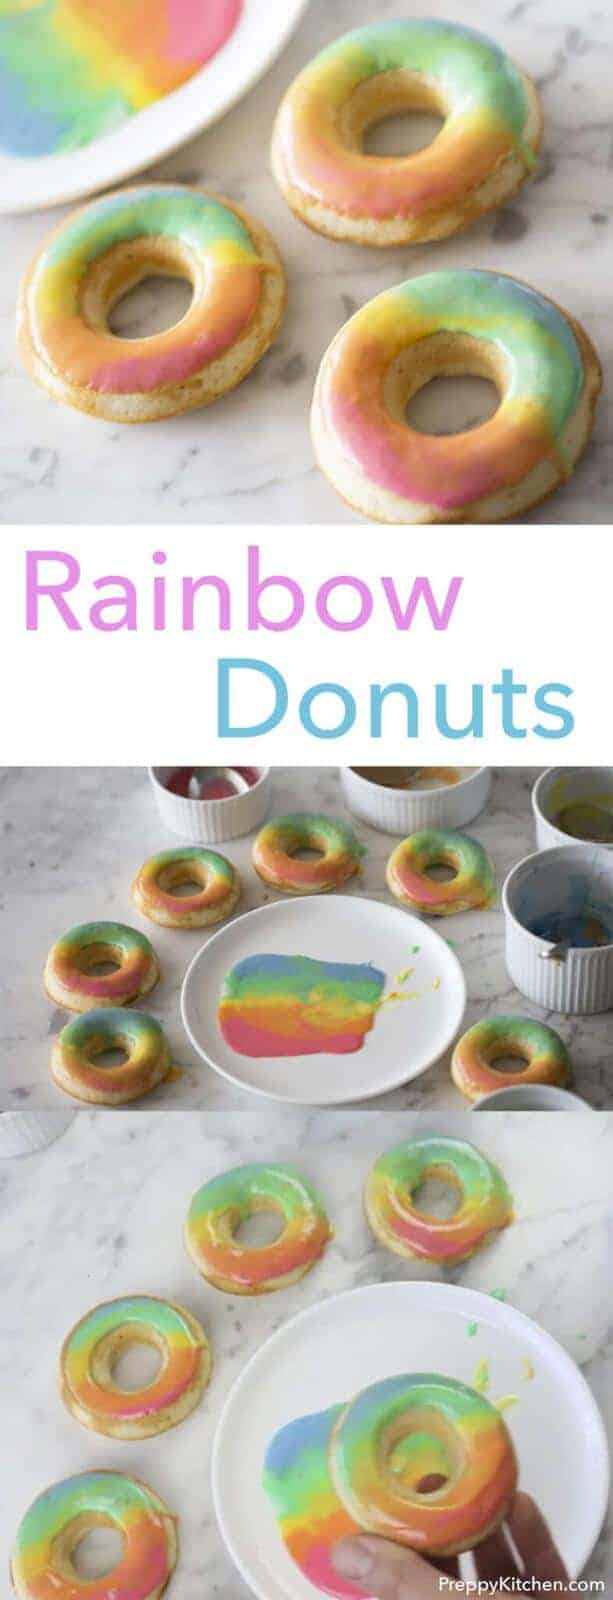 Delicious baked vanilla donuts with a beautiful rainbow effect. Click over for recipe and video.